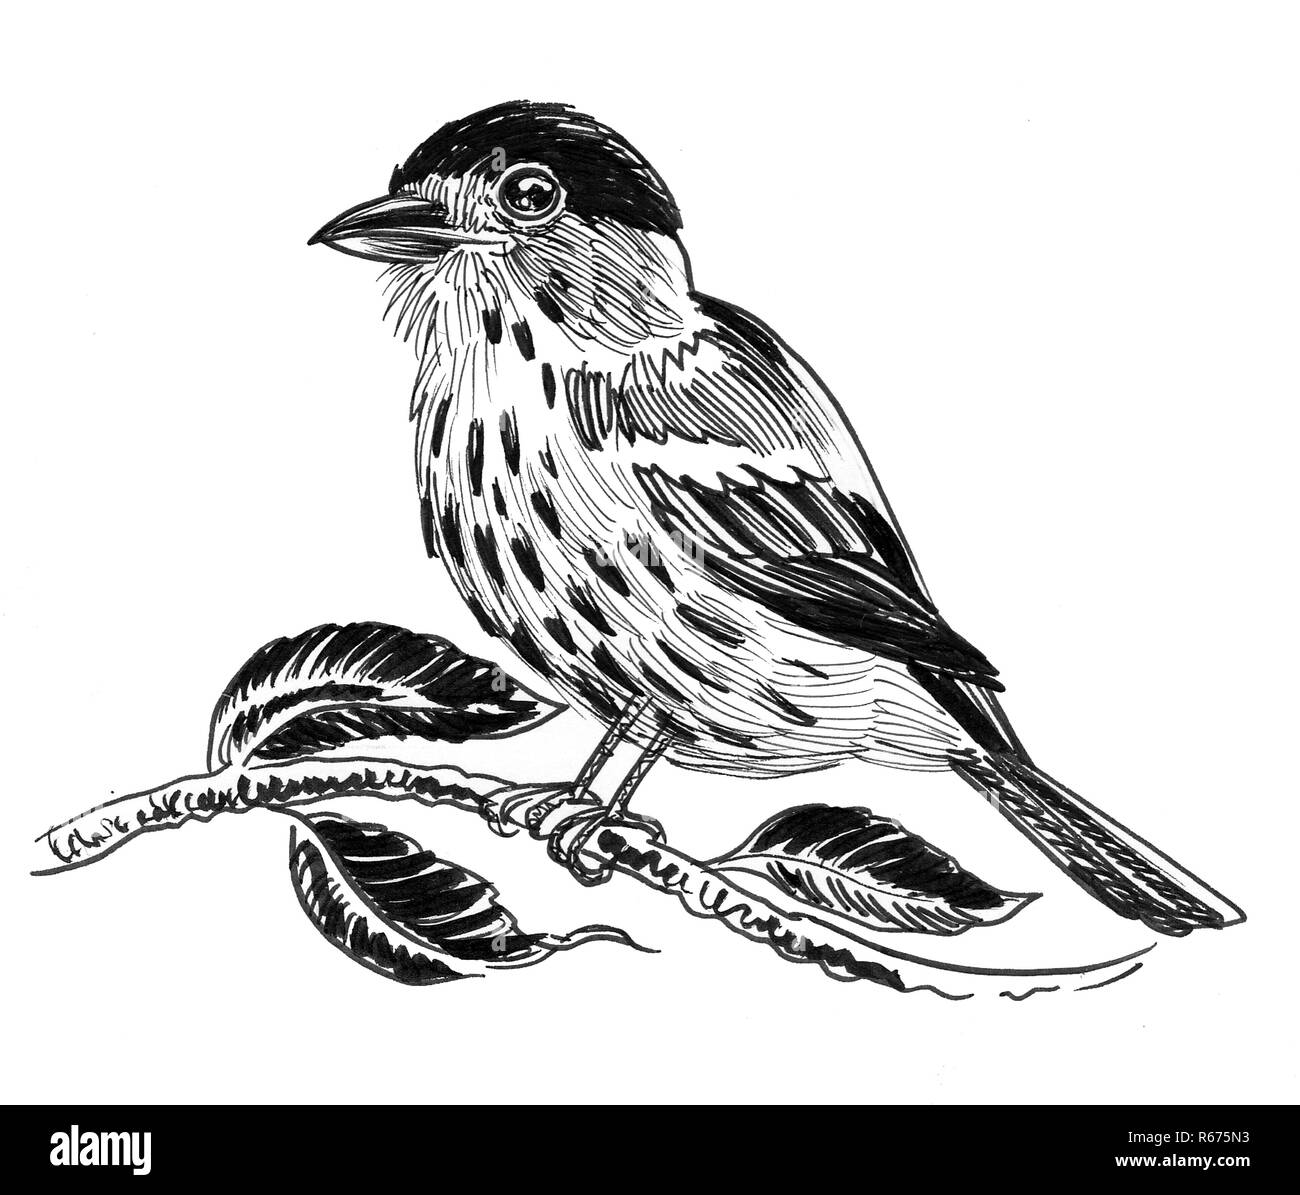 Cute Bird Sitting On A Tree Branch Ink Black And White Drawing Stock Photo Alamy